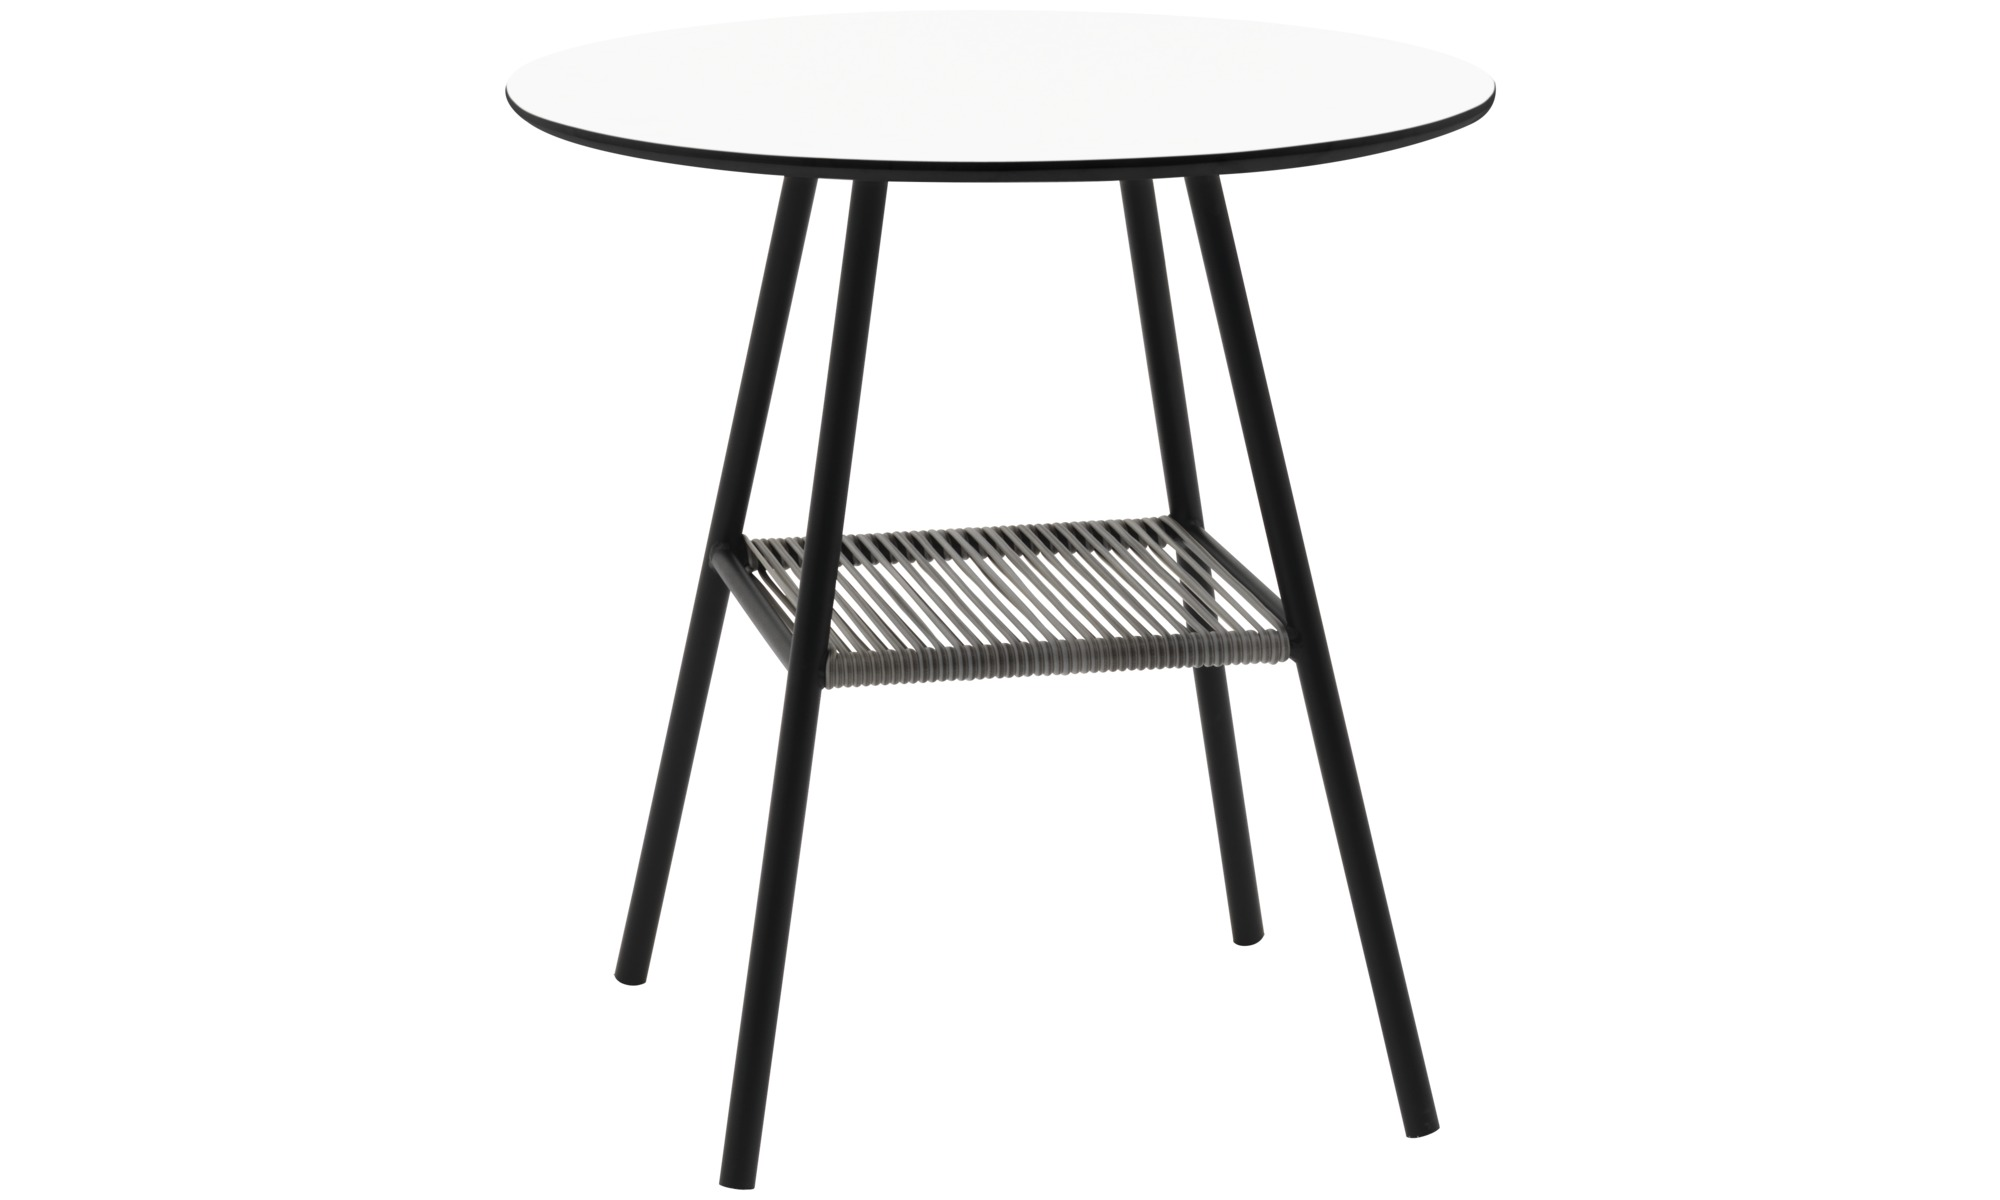 Outdoor tables - Elba table (for in and outdoor use) - round - White - Laminate